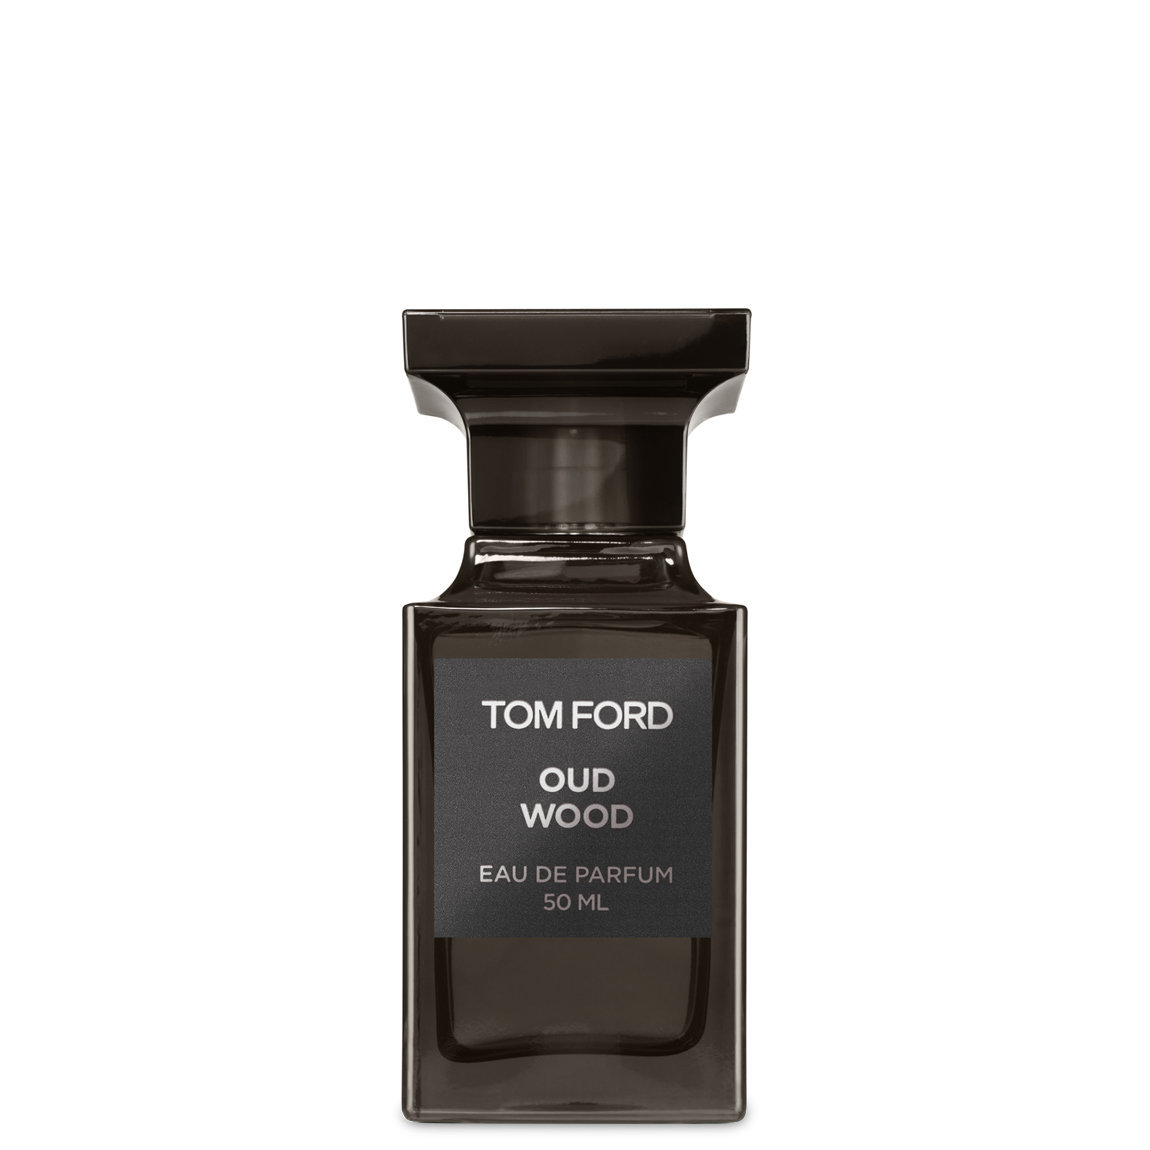 TOM FORD Oud Wood 50 ml alternative view 1 - product swatch.